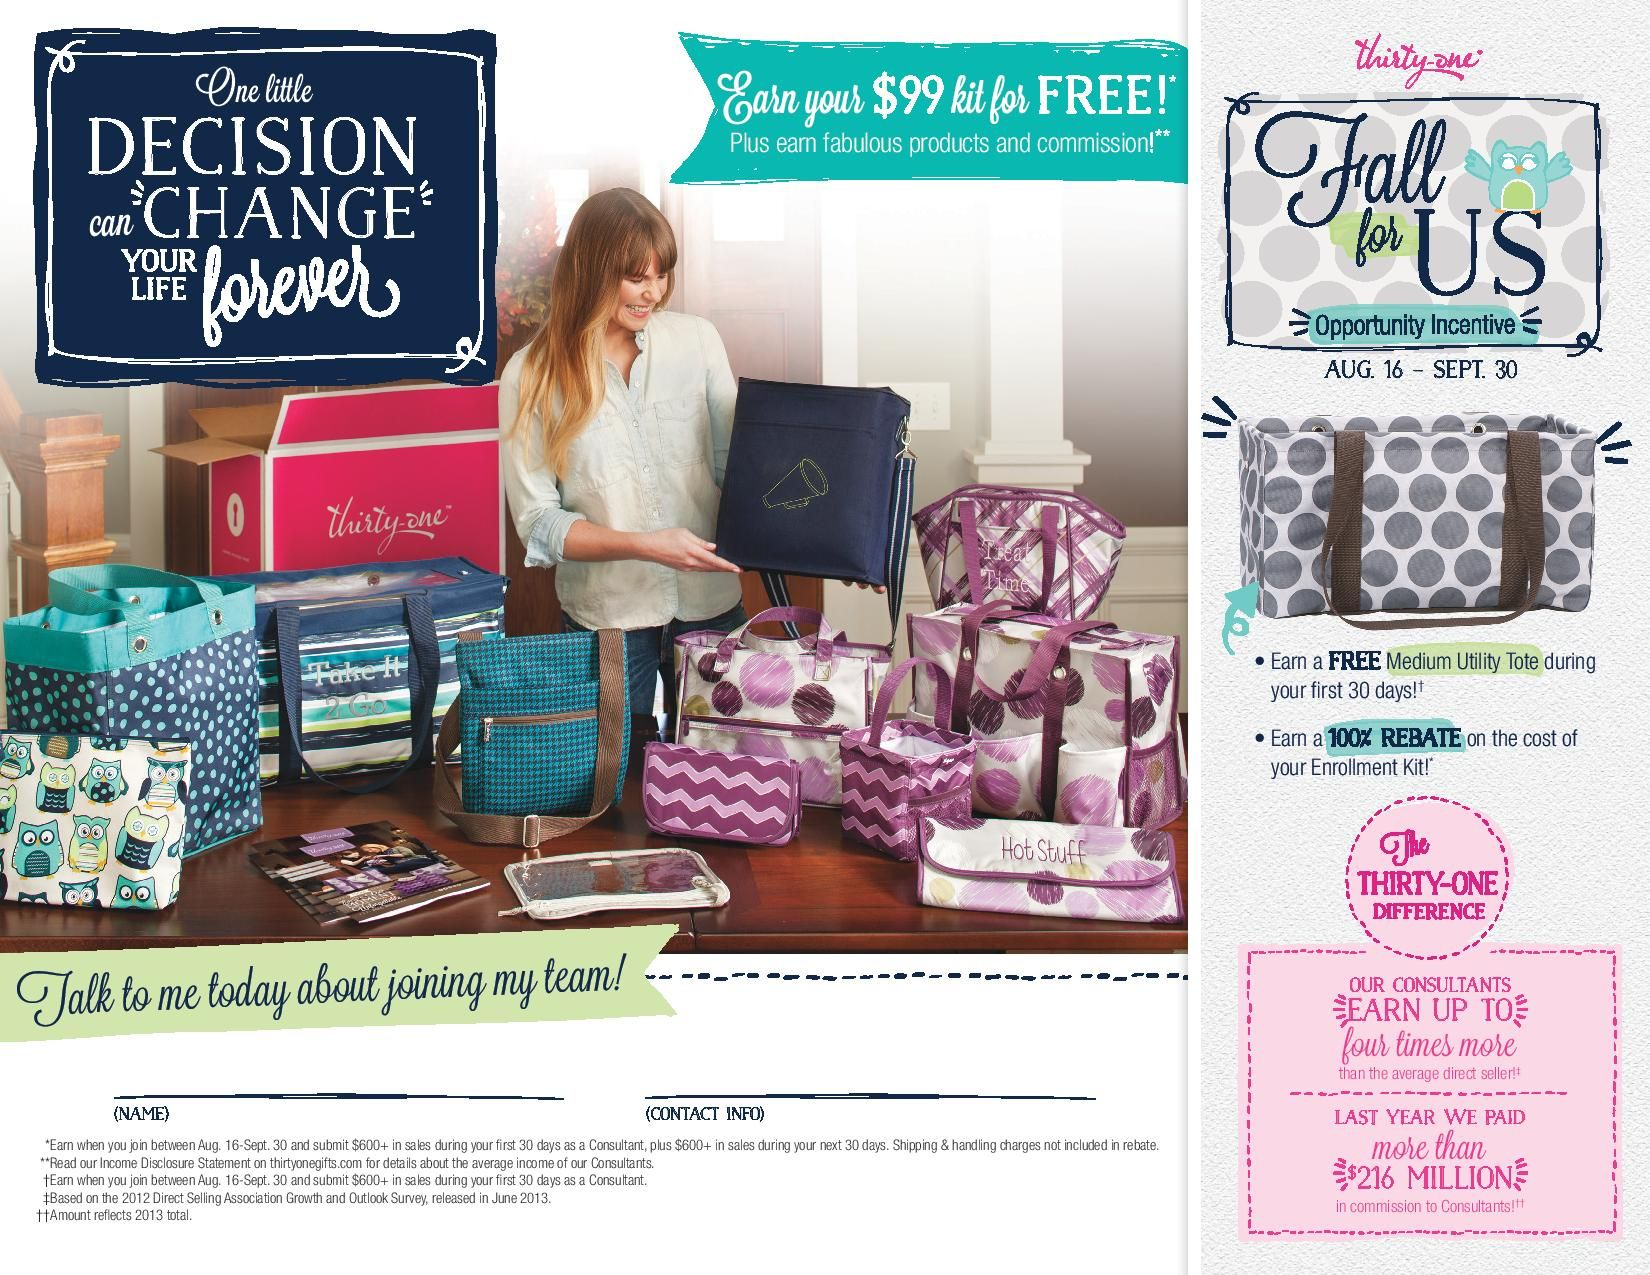 Have you thought about making a choice that can change your life? If you have, Thirty-One could be your answer and the site to an amazing future!  www.mythirtyone.com/sarahotto